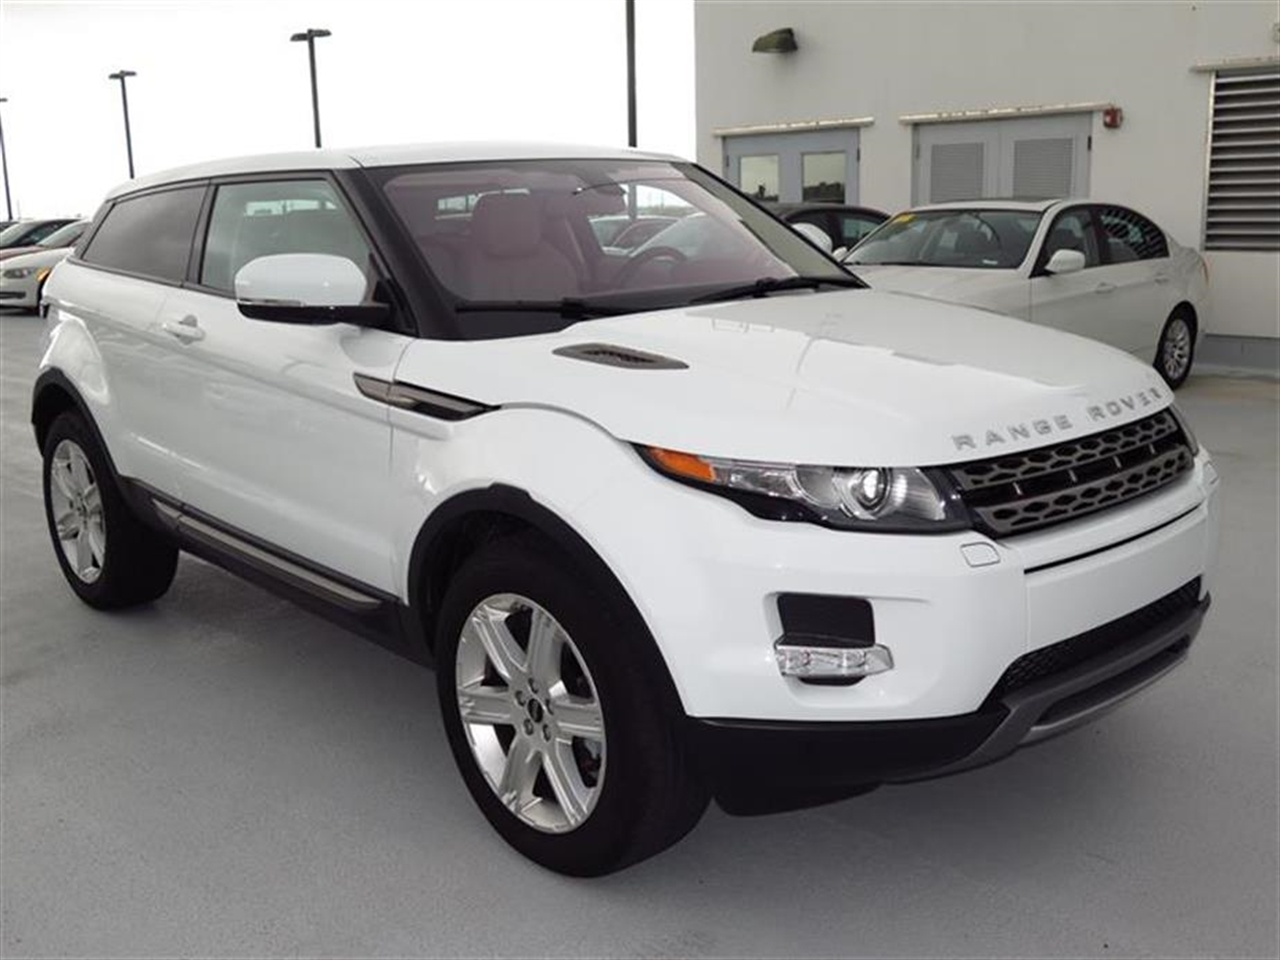 2012 LAND ROVER RANGE ROVER EVOQUE 2dr Cpe Pure Plus 5963 miles 6040 split 3-seat rear bench seat